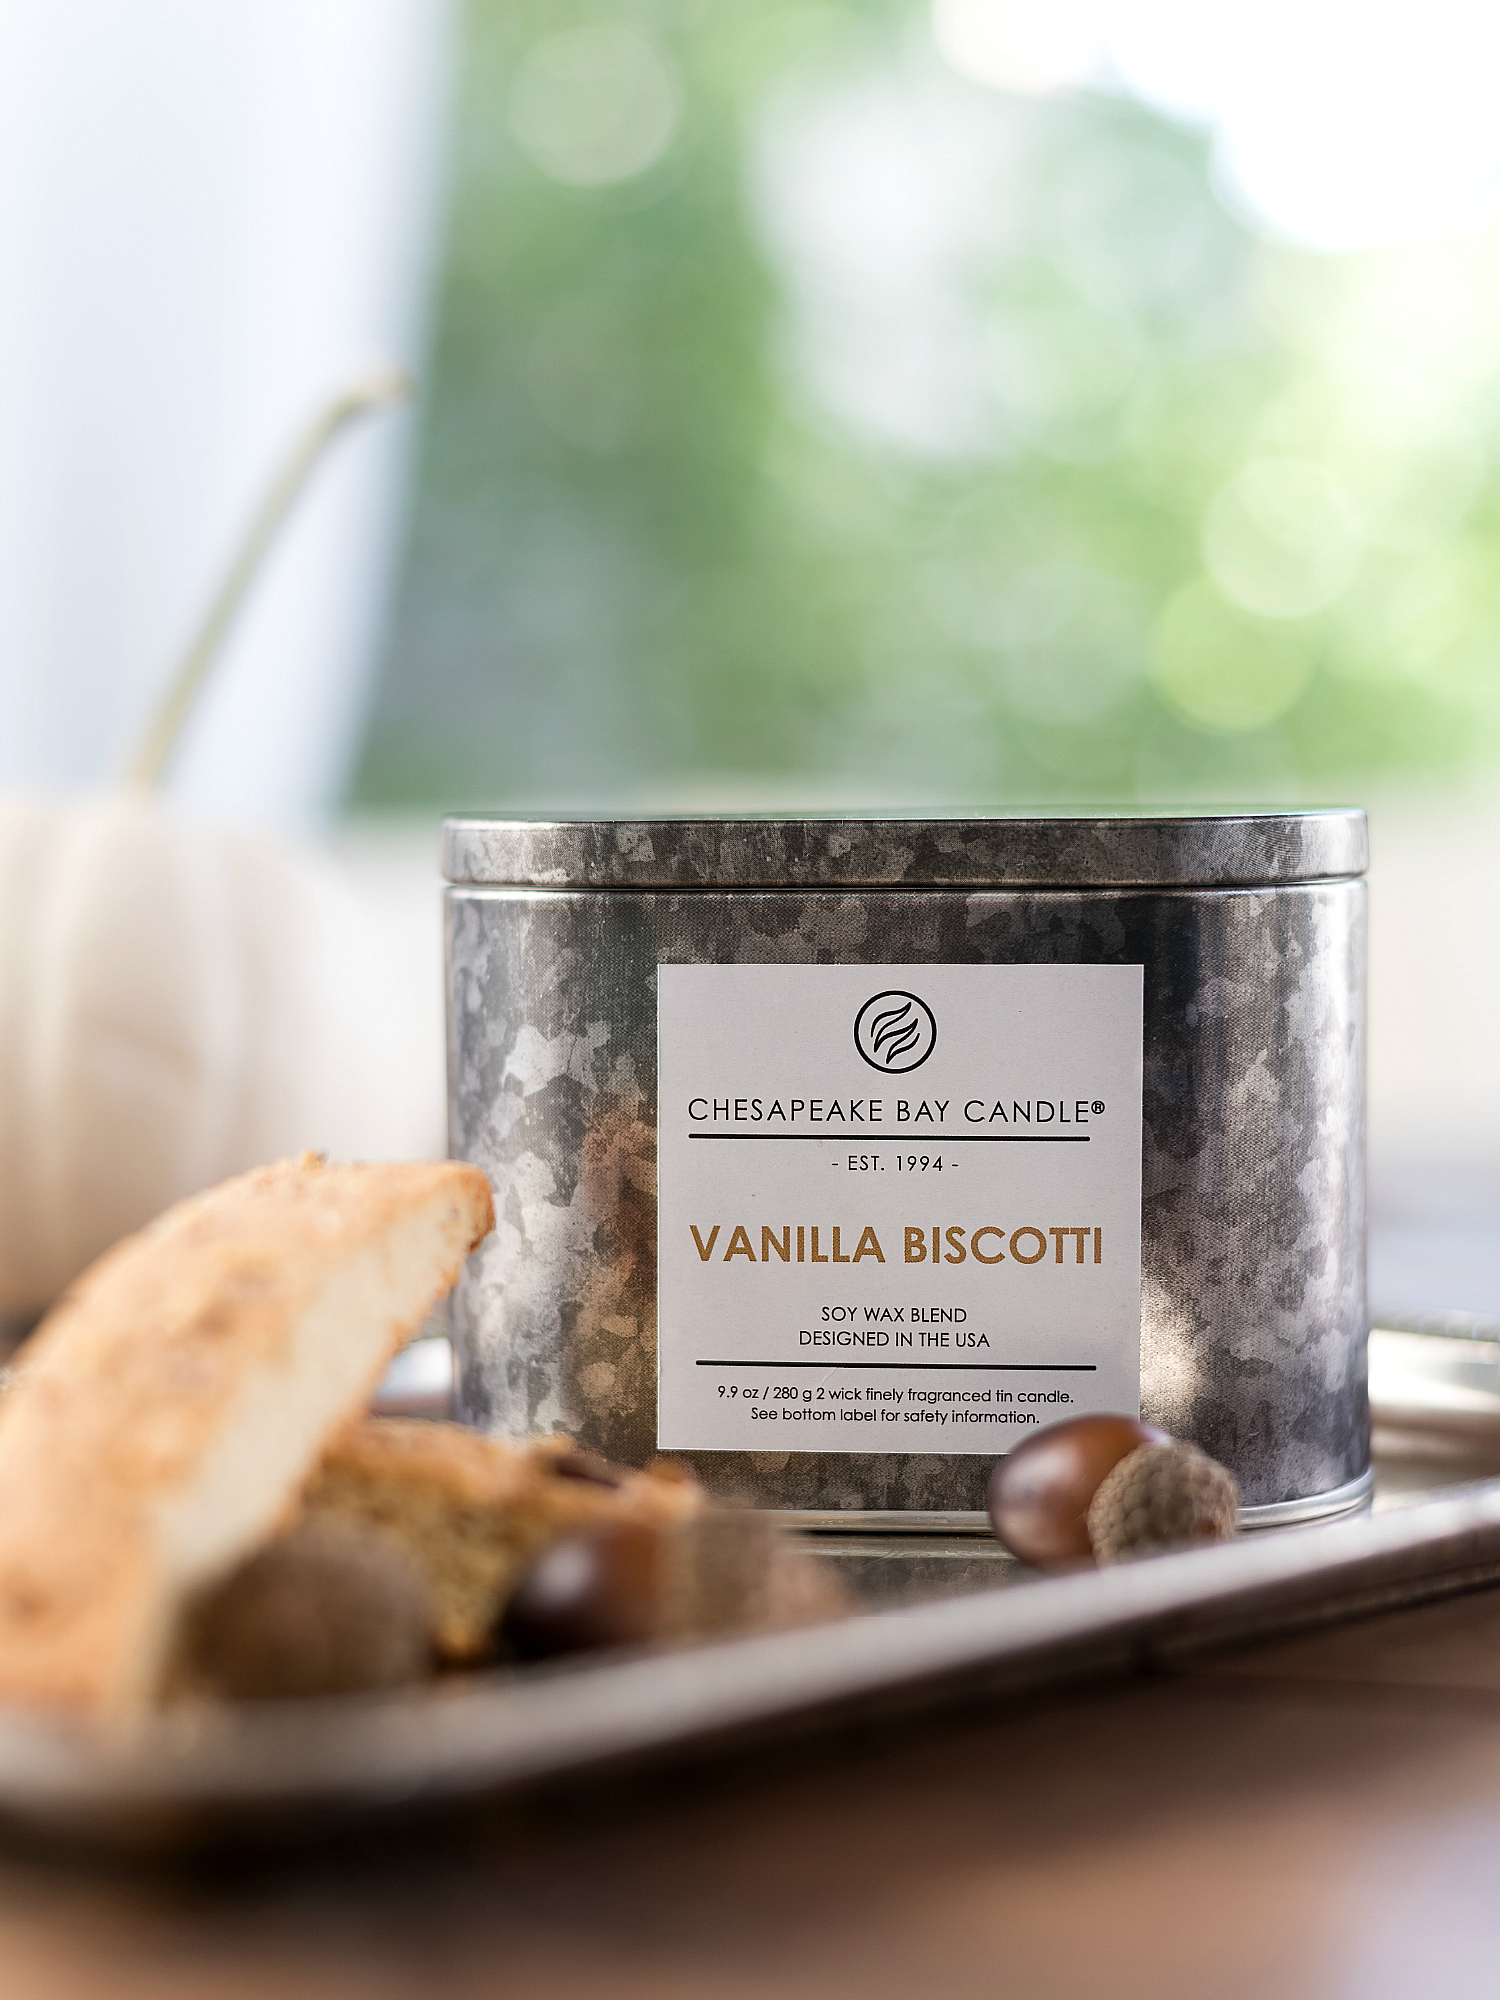 Vanilla Biscotti from Chesapeake Bay Candle Heritage Collection Fall 2017